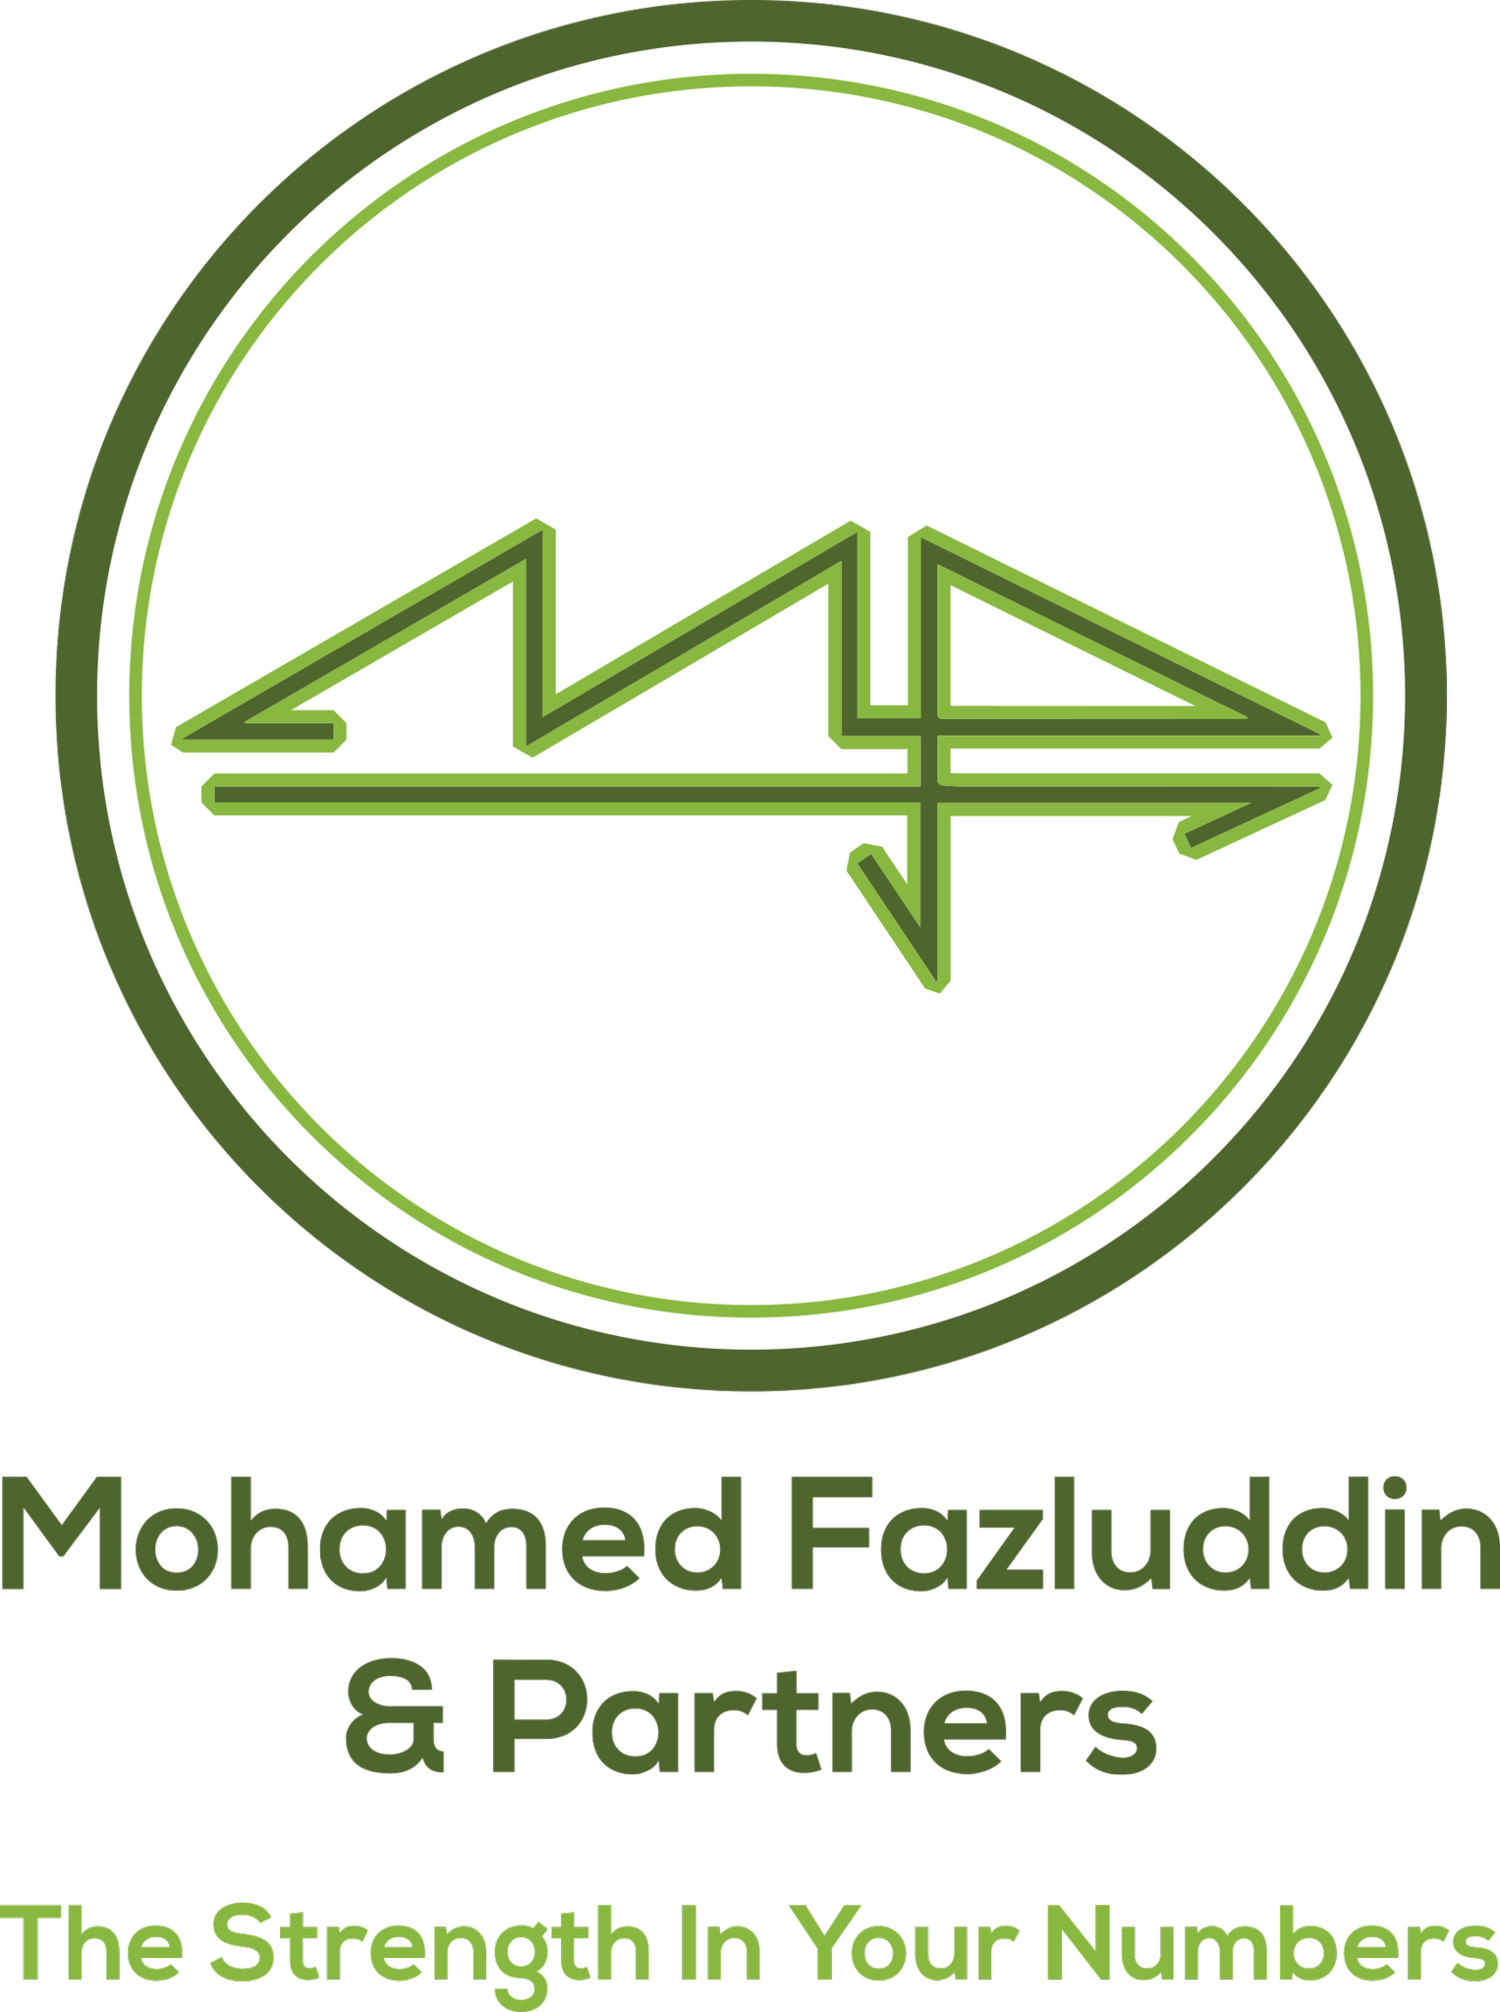 Mohamed Fazluddin and Partners